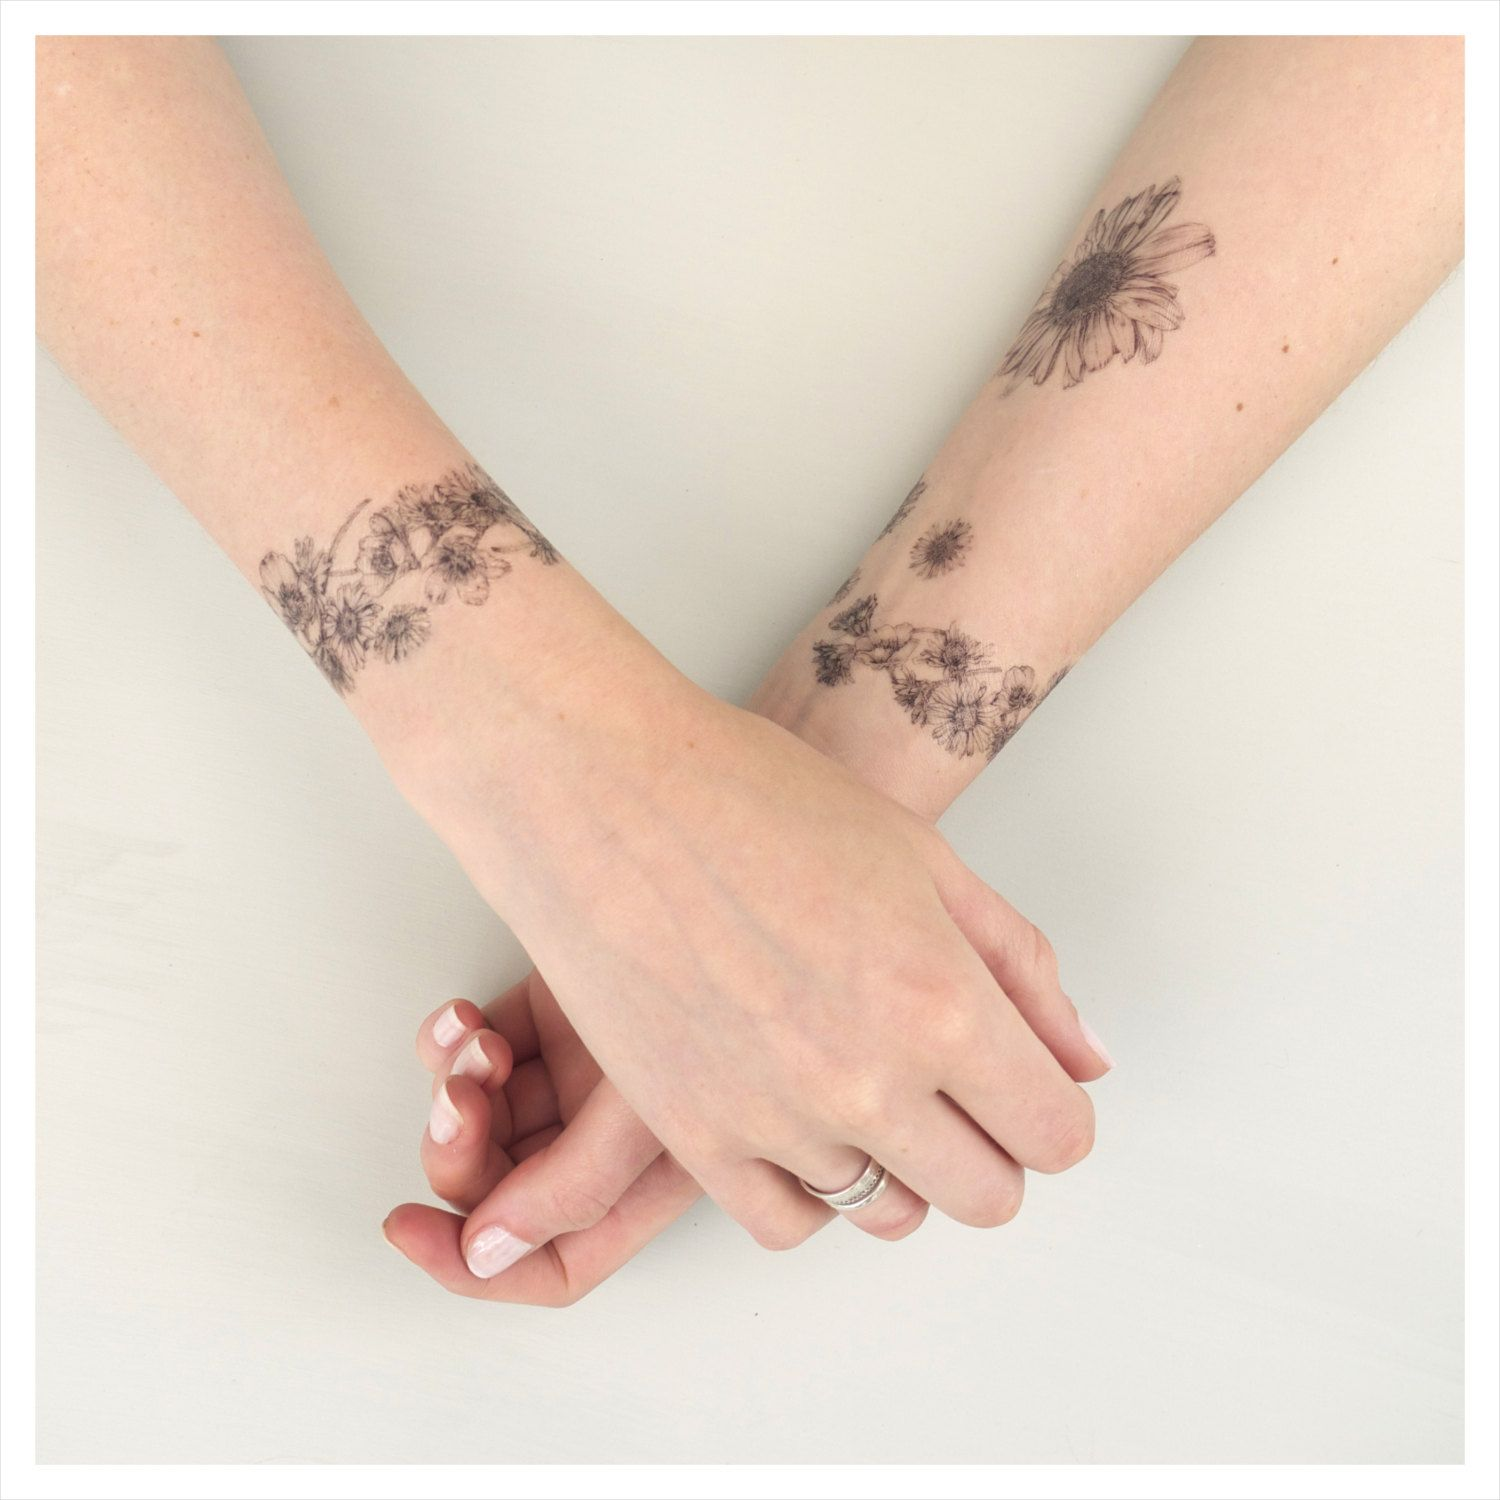 Daisy Chain Temporary Tattoo Kit NATURE GIRL by